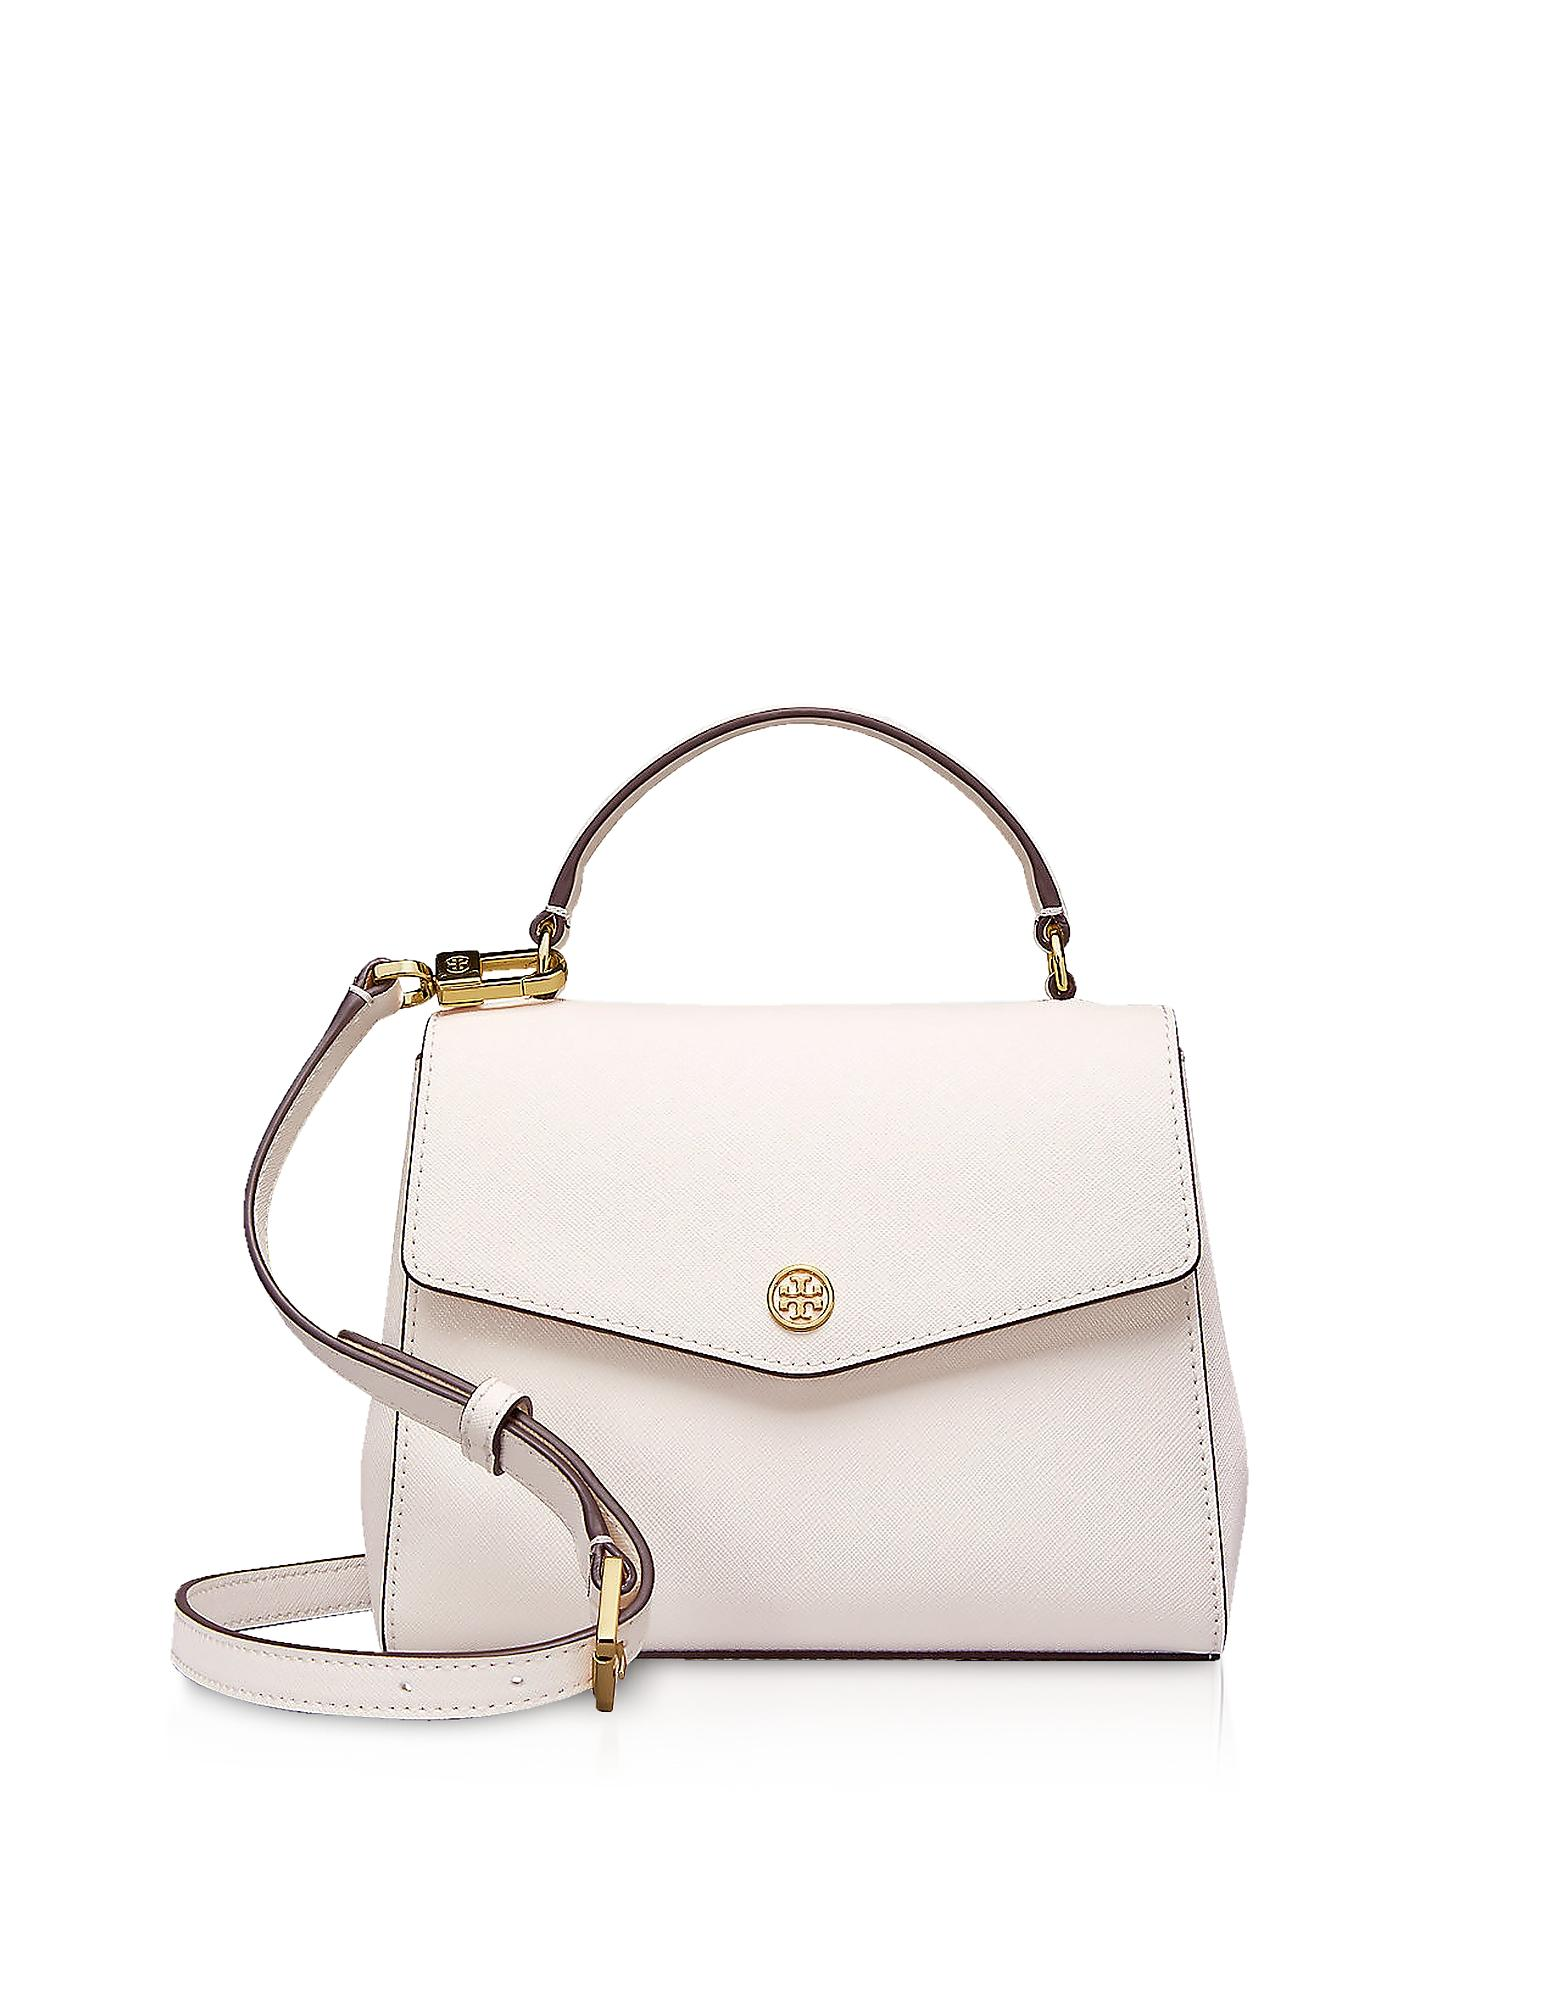 2ca2fa44eed Tory Burch Birch Leather Robinson Small Top-Handle Satchel Bag In Birch  White Gold